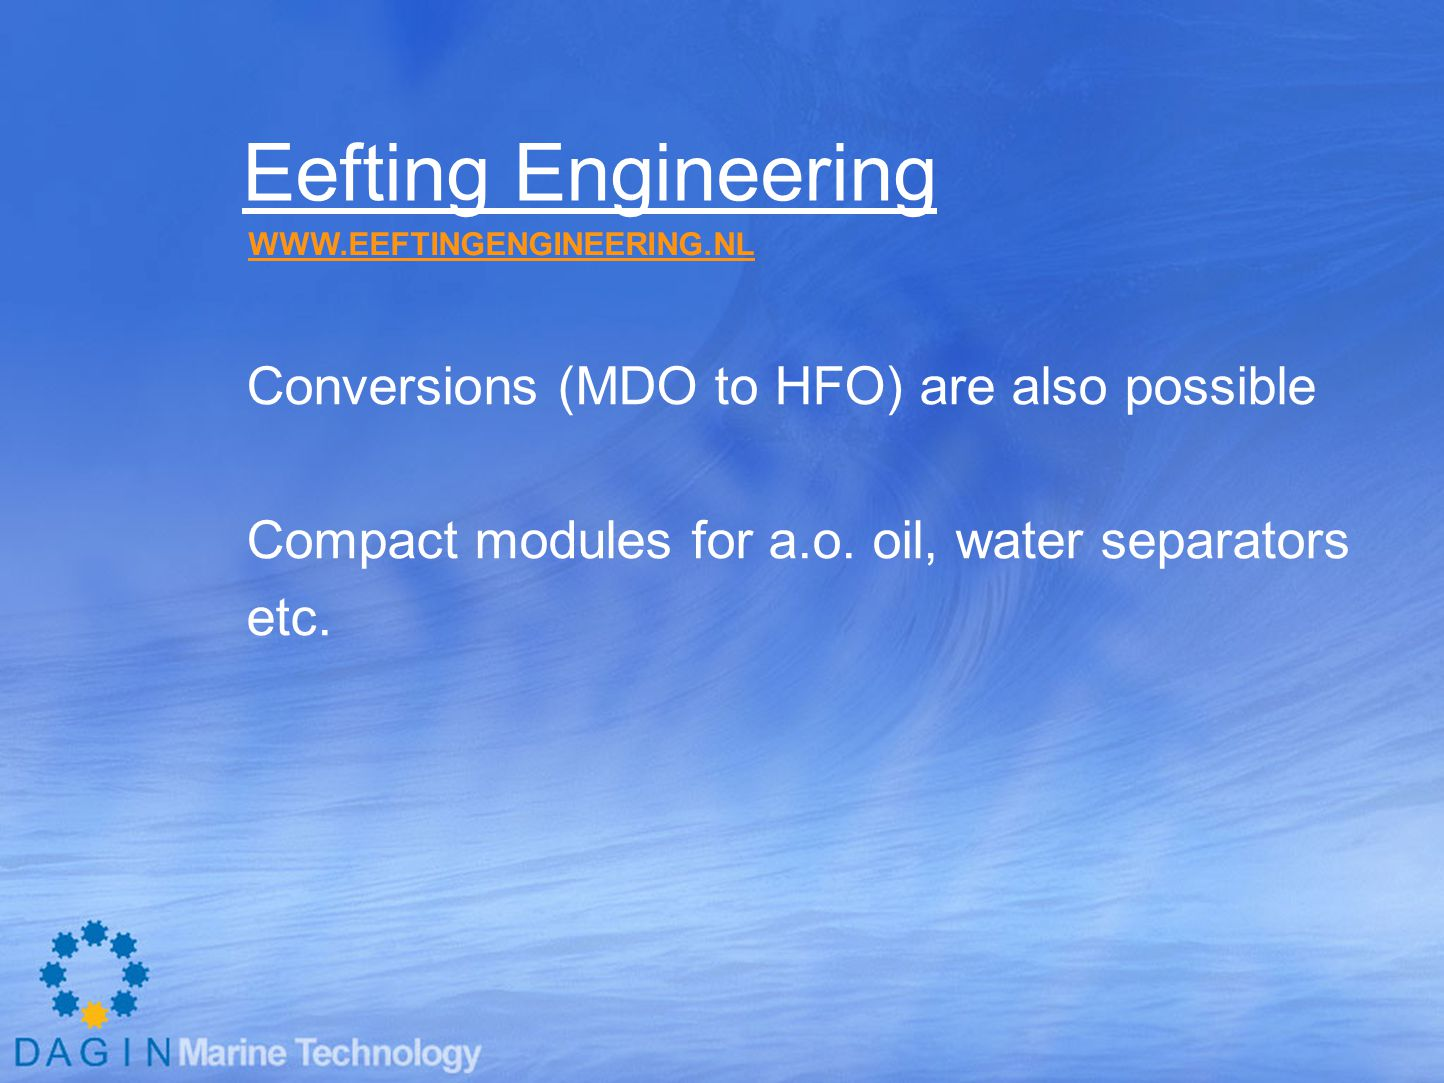 Eefting Engineering Conversions (MDO to HFO) are also possible